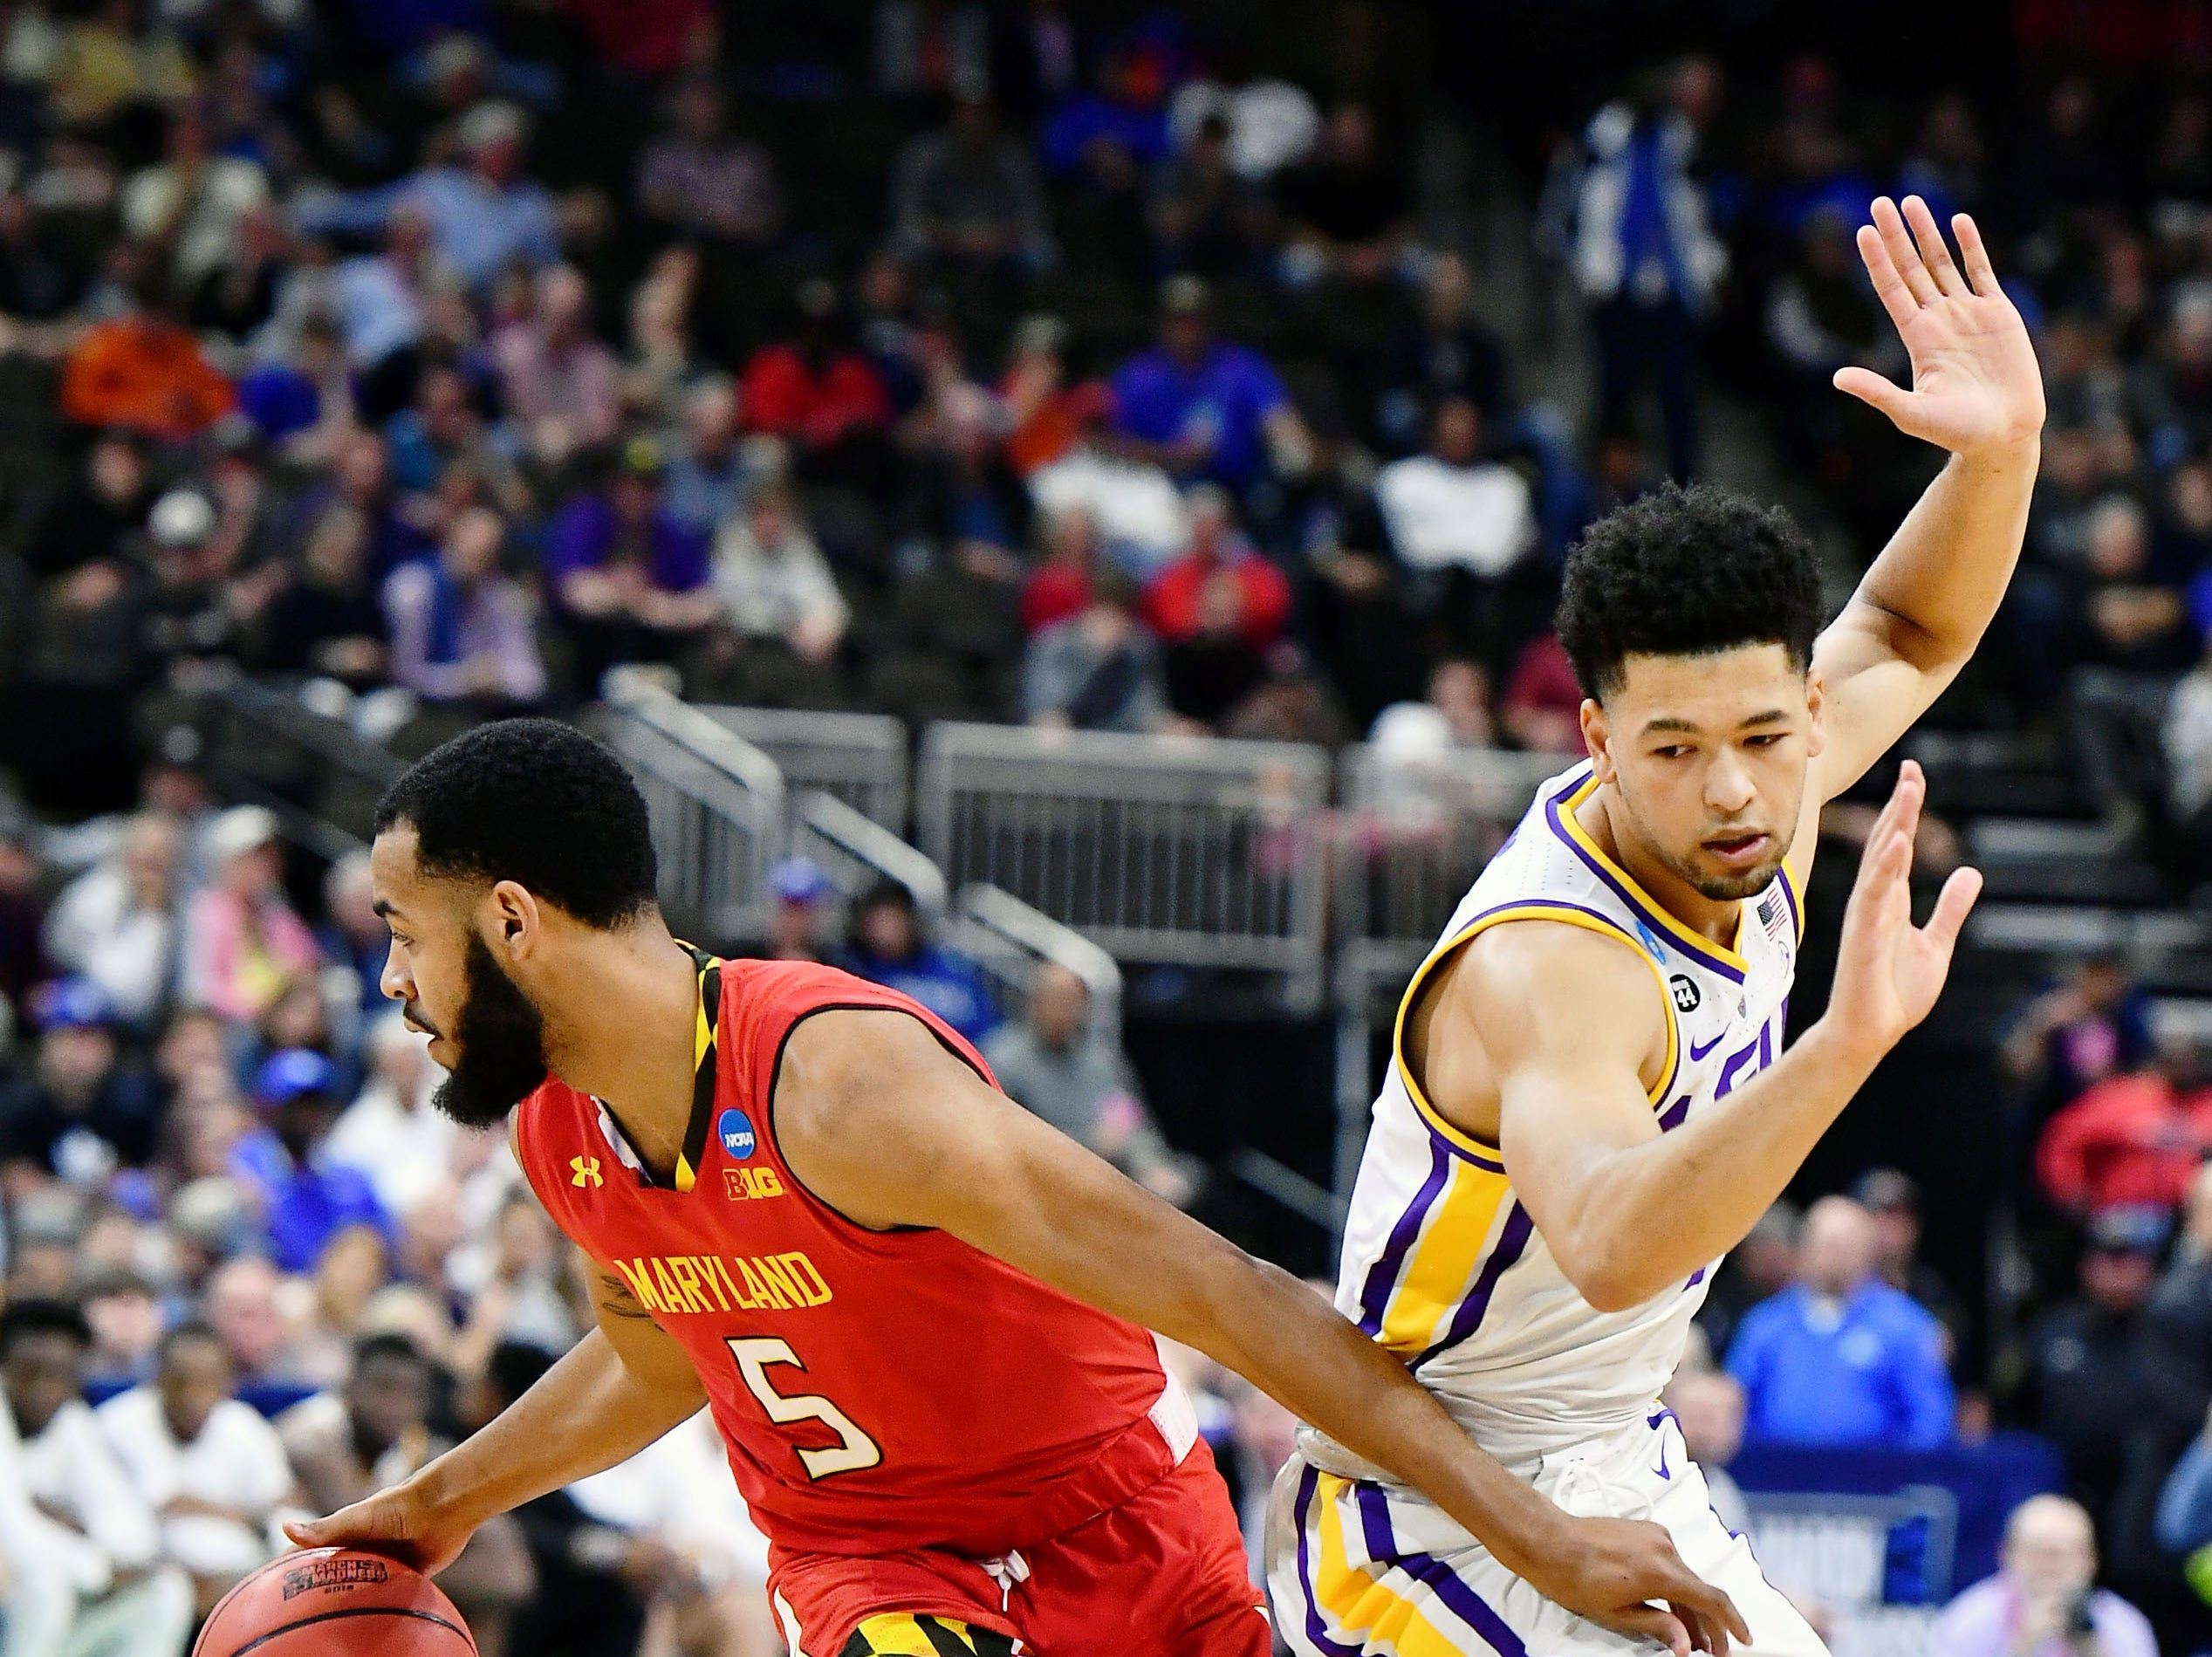 Mar 23, 2019; Jacksonville, FL, USA; Maryland Terrapins guard Eric Ayala (5) dribbles around LSU Tigers guard Skylar Mays (4) during the second half in the second round of the 2019 NCAA Tournament at Jacksonville Veterans Memorial Arena. Mandatory Credit: John David Mercer-USA TODAY Sports